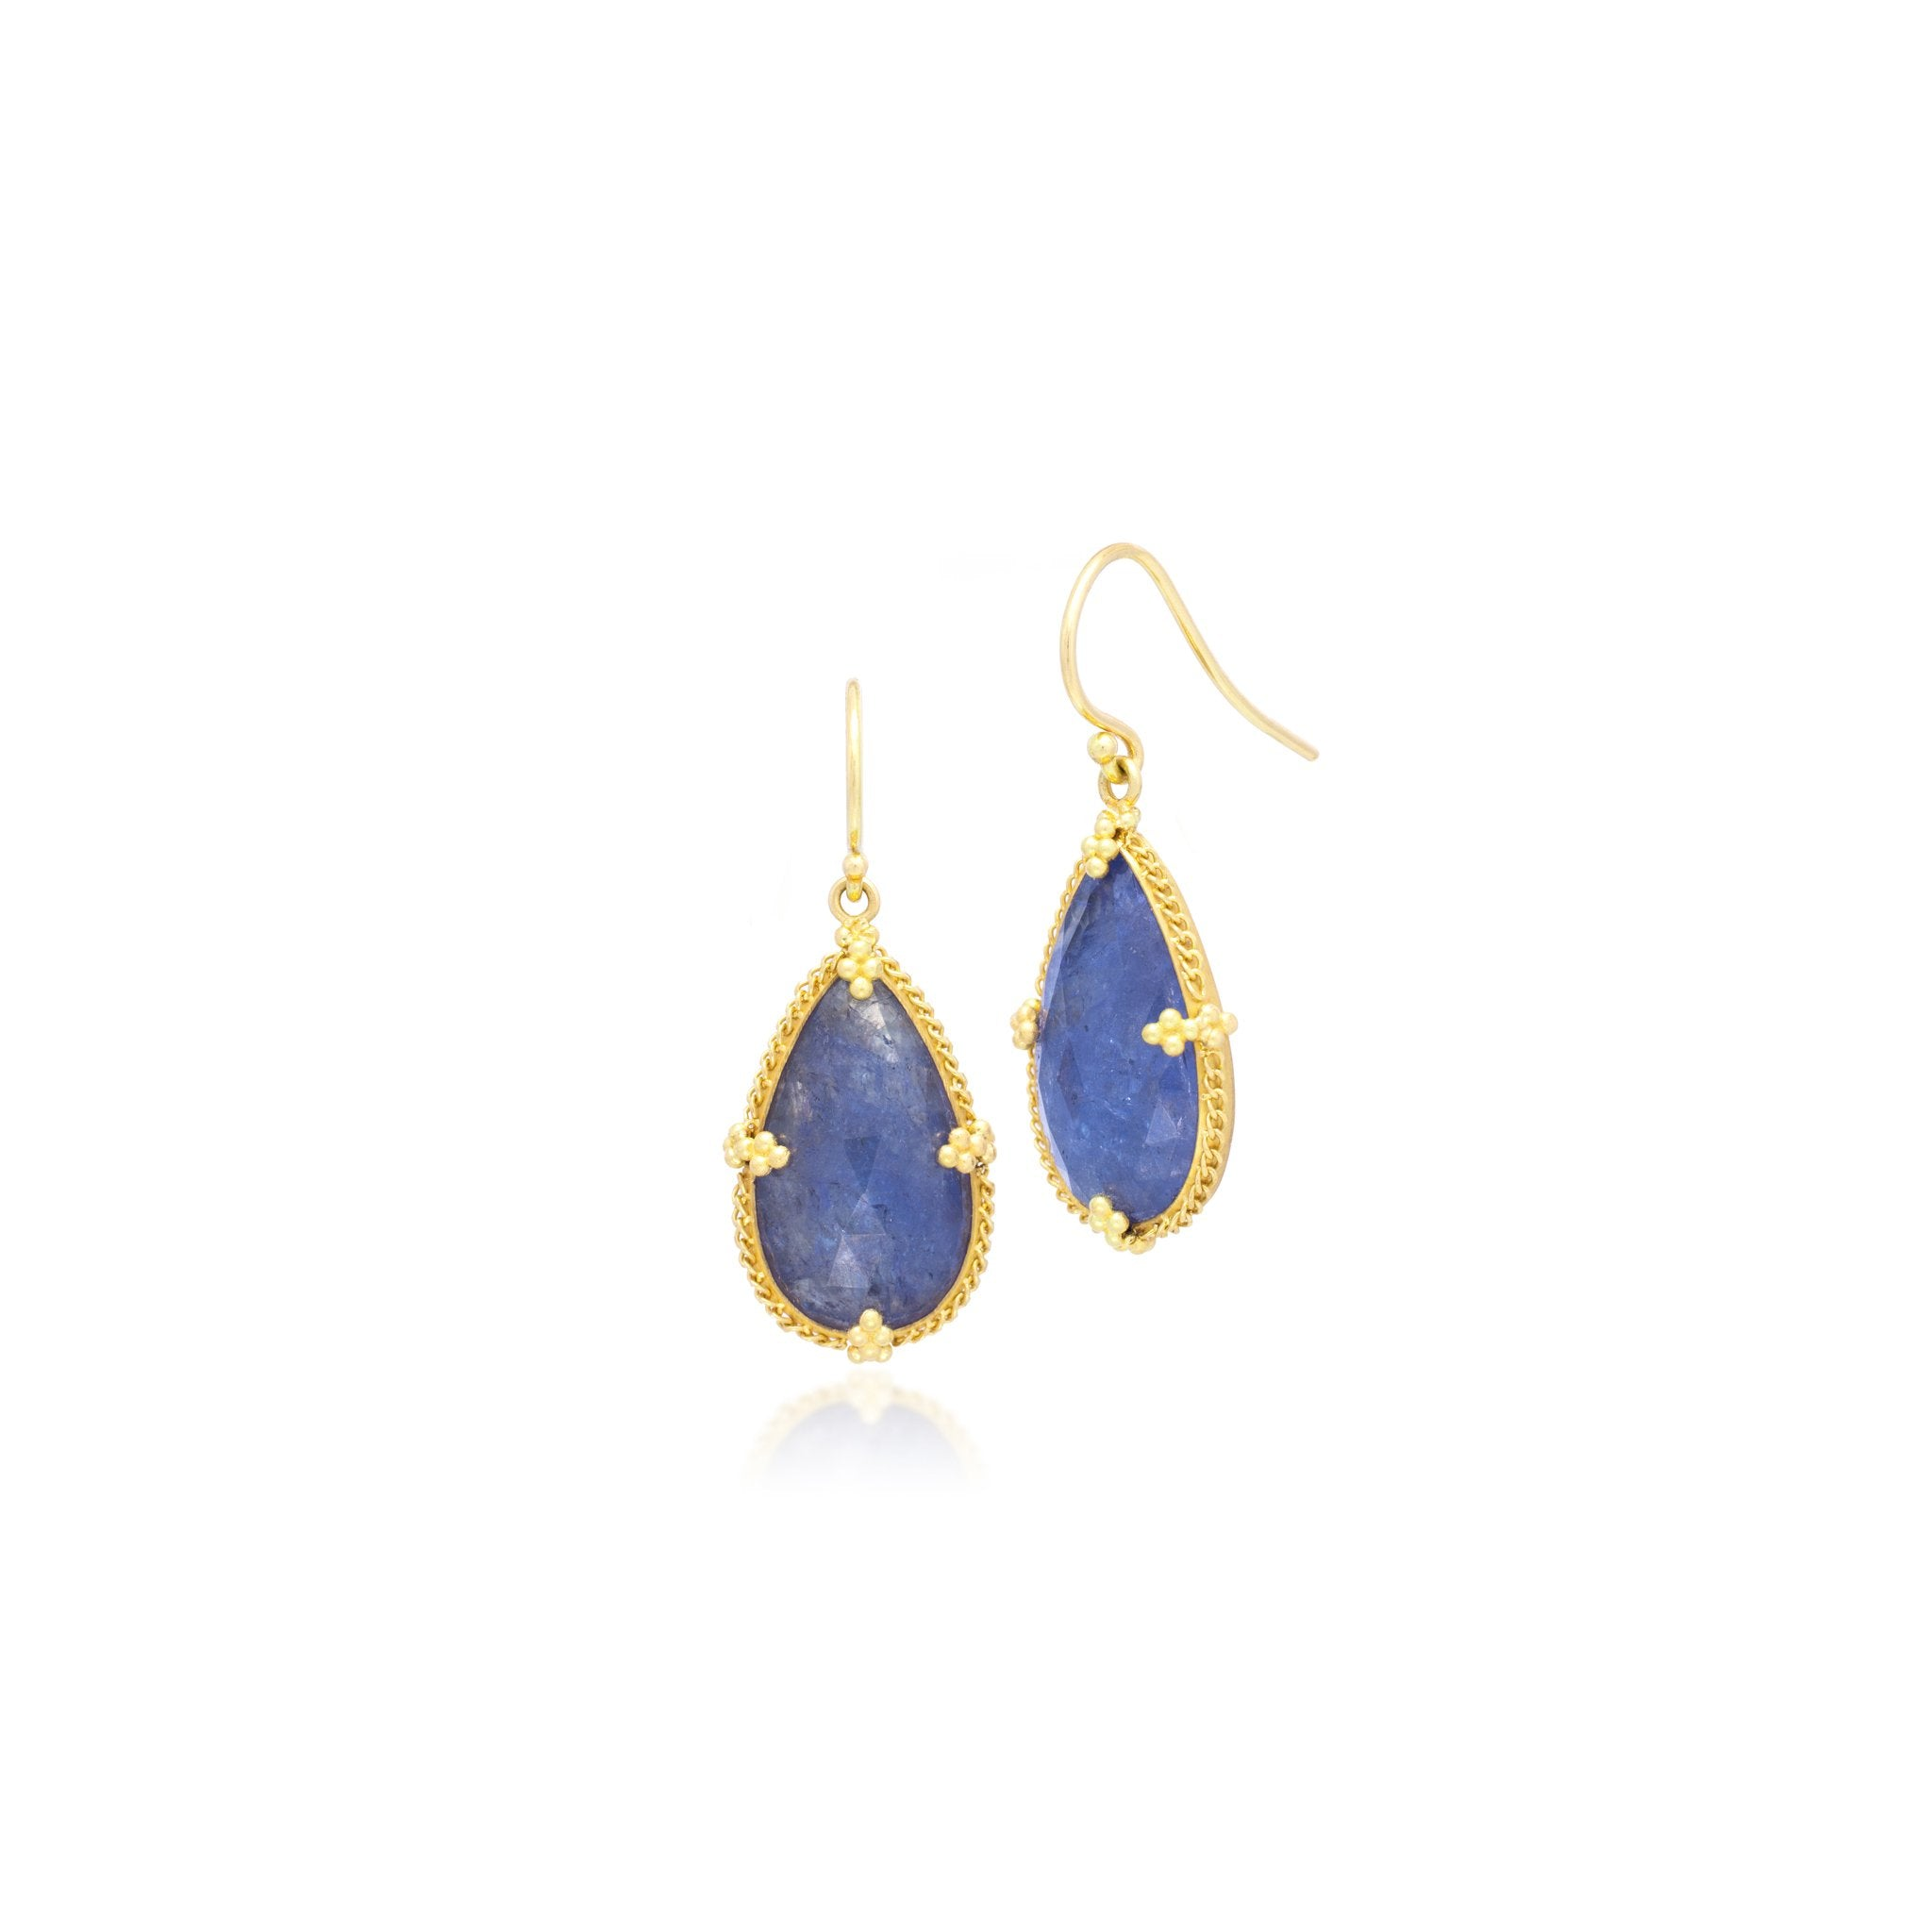 Amali-Tanzanite Teardrop Earrings